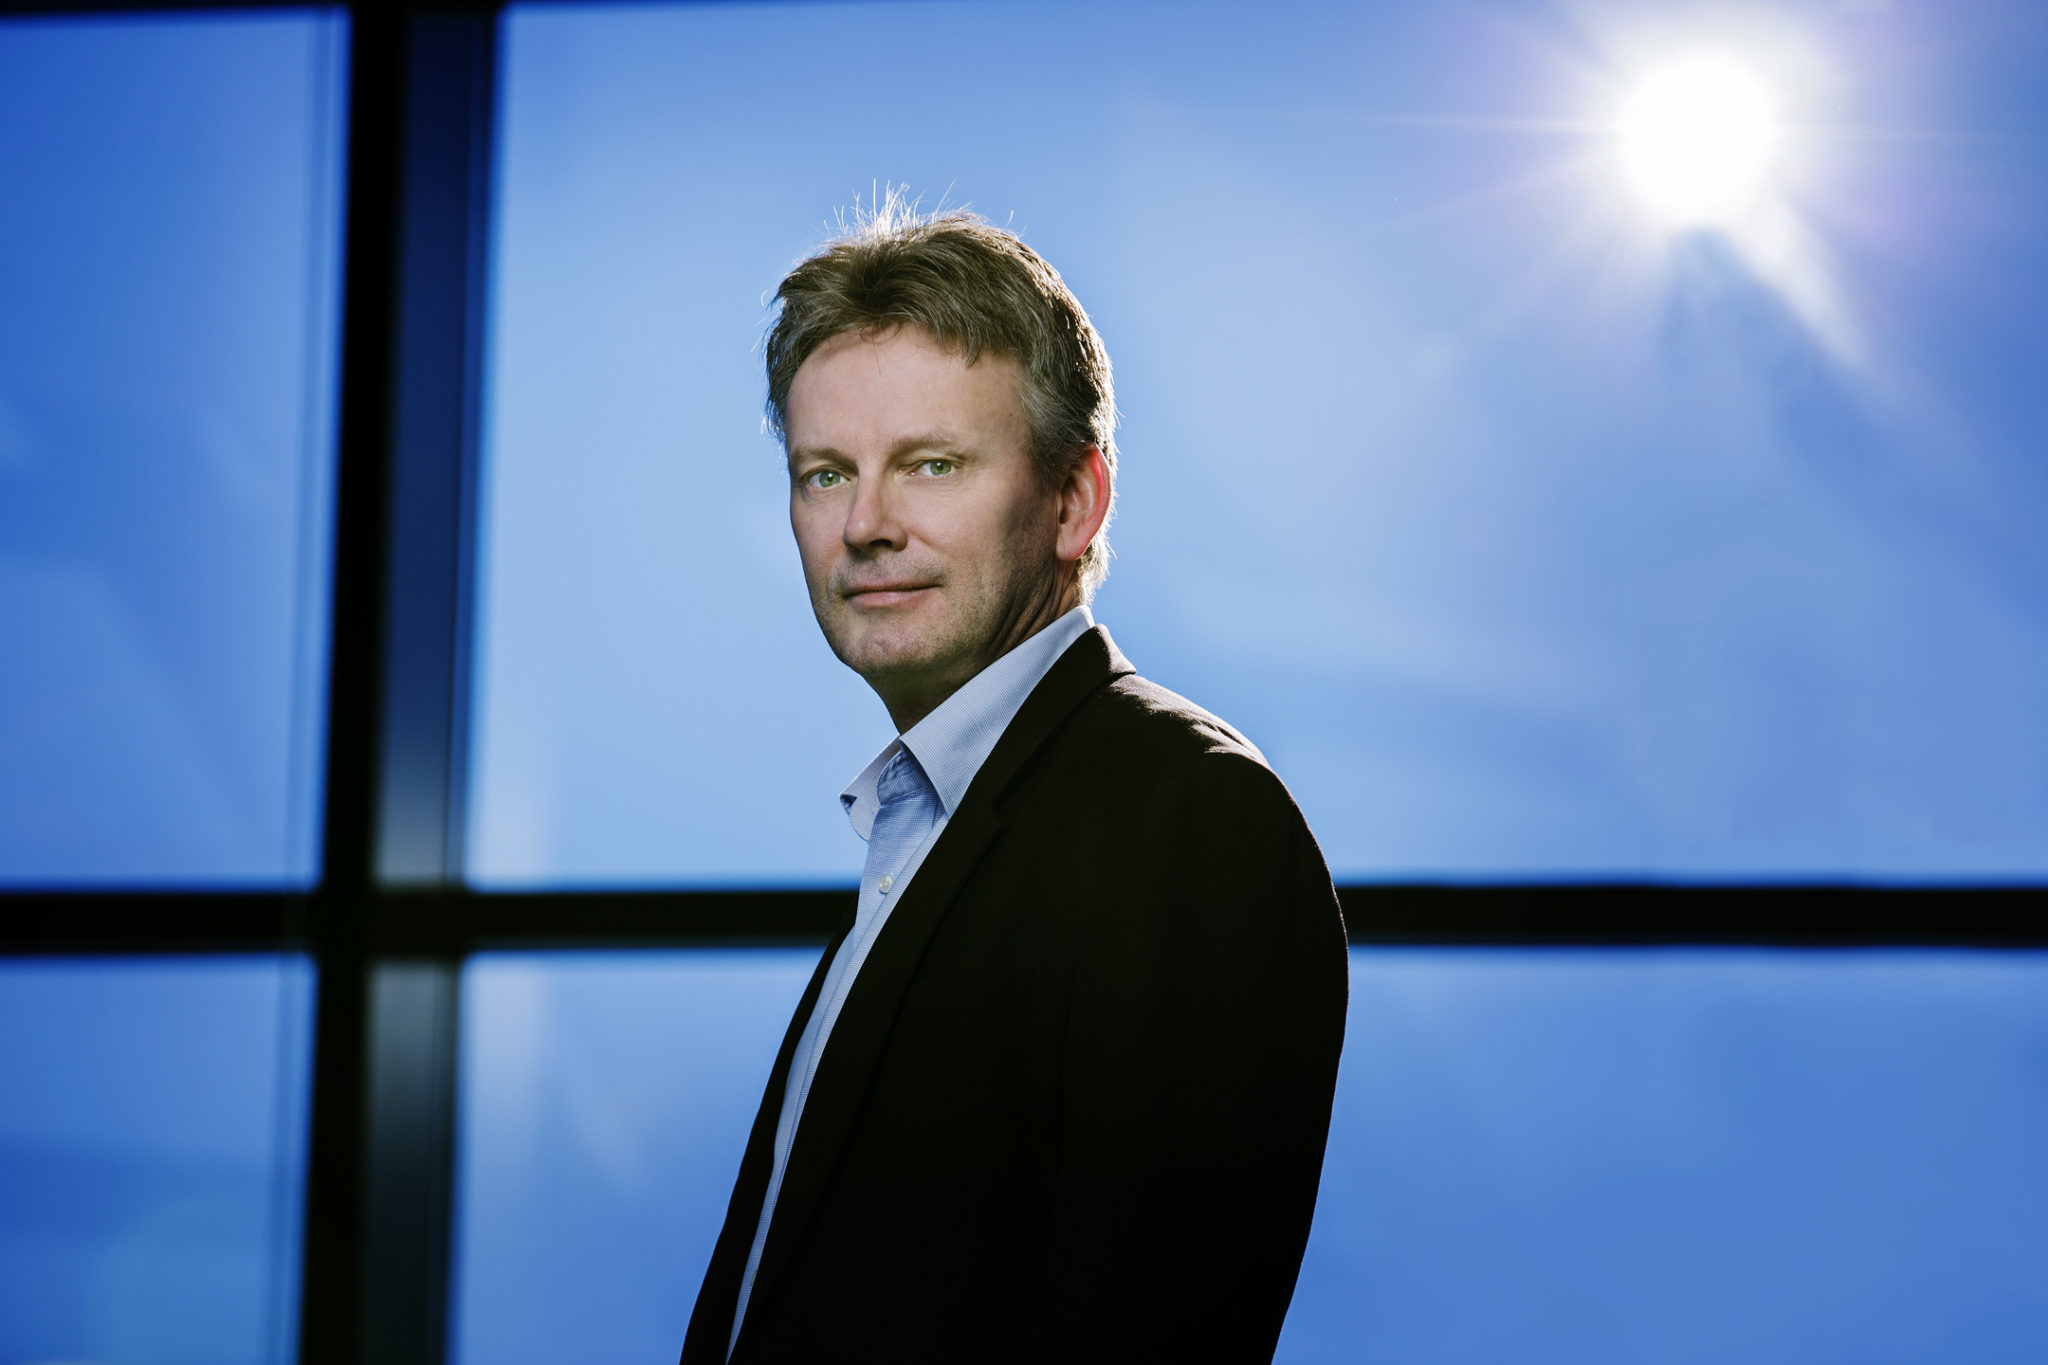 Morten Tengs CEO Telenor Satellite